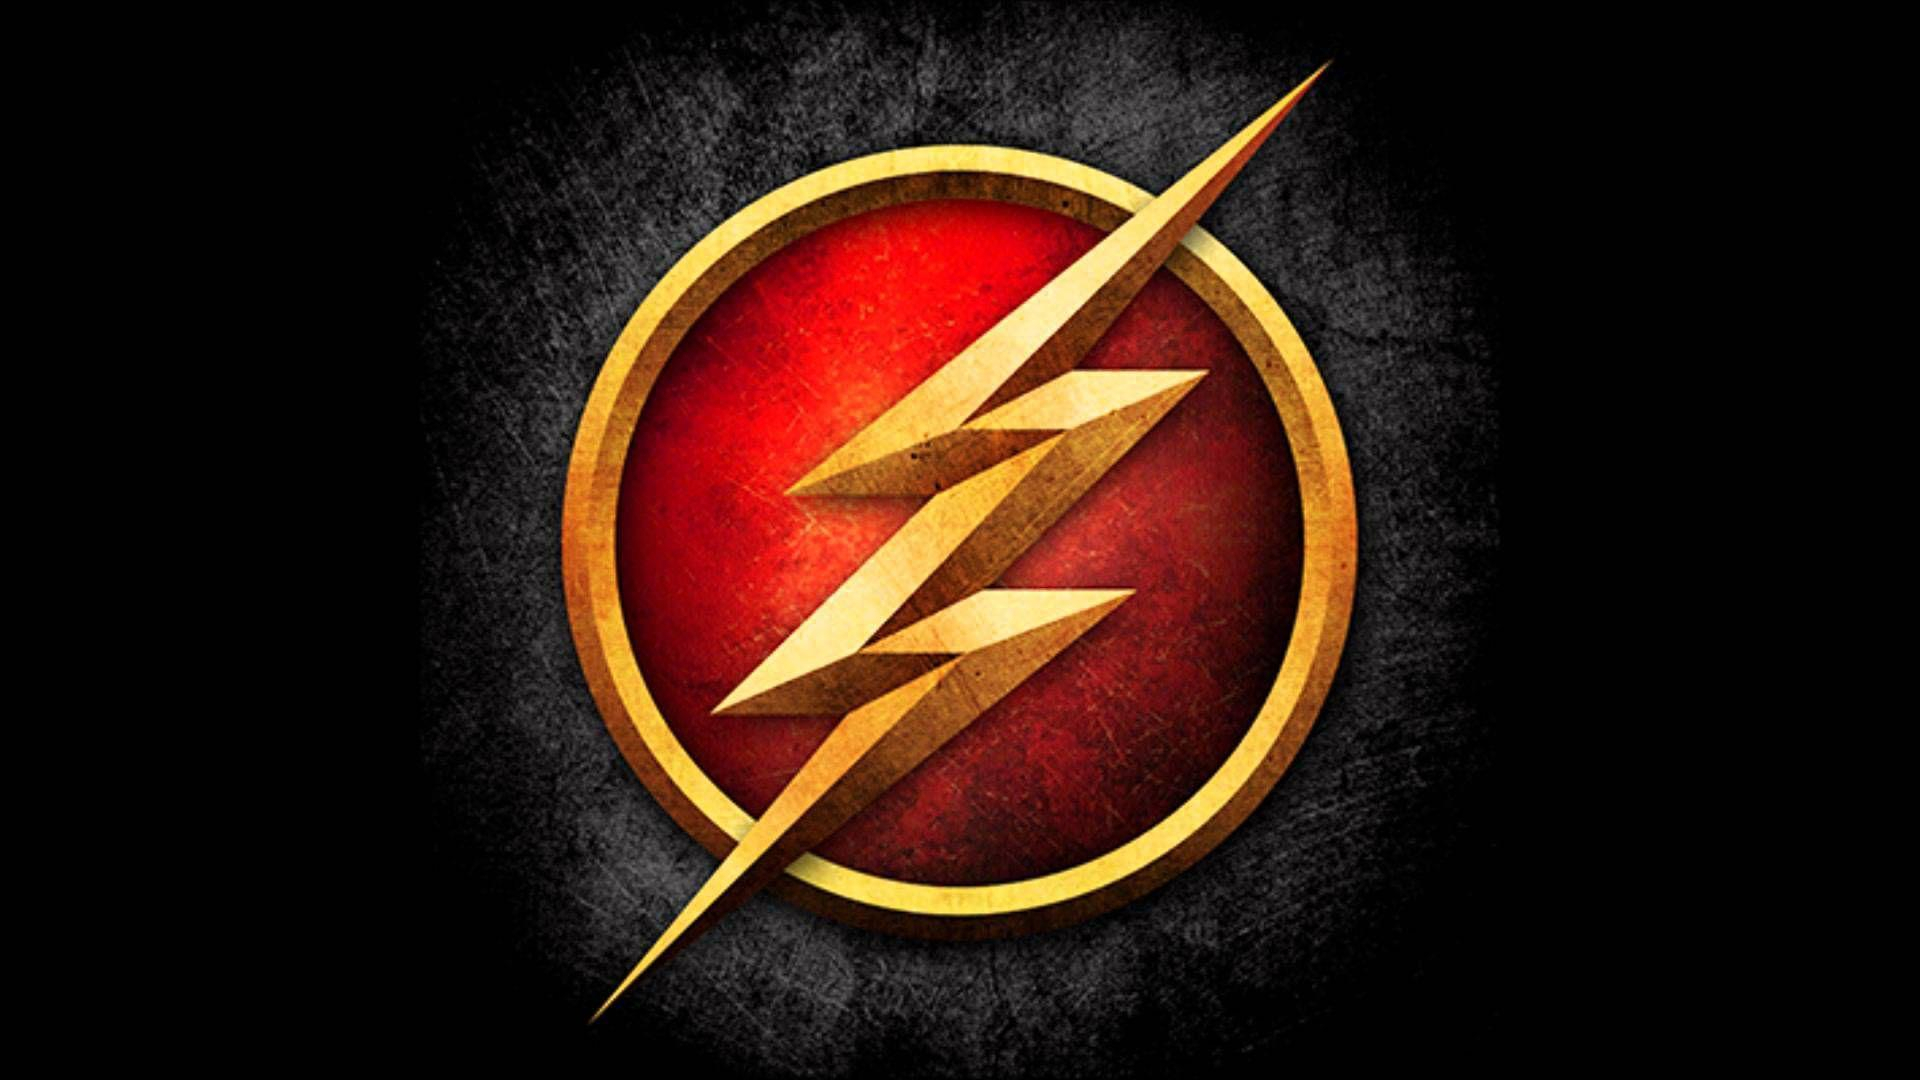 the flash logo wallpapers - wallpaper cave